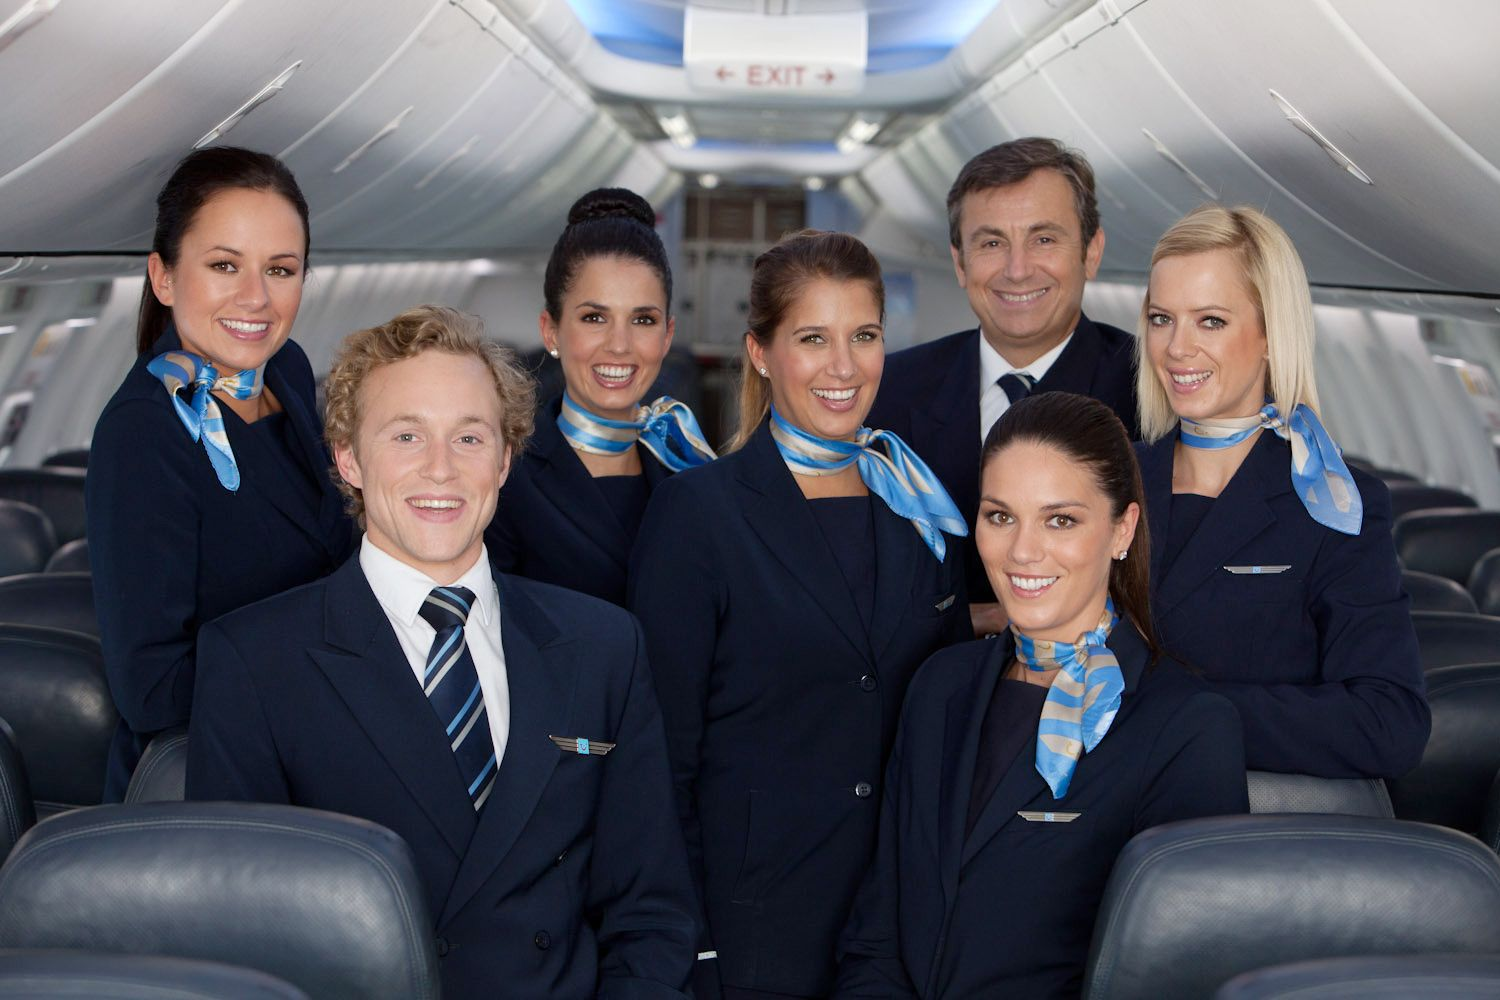 Jetairfly crew | Uniforms ♥ Fly Tom | Pinterest